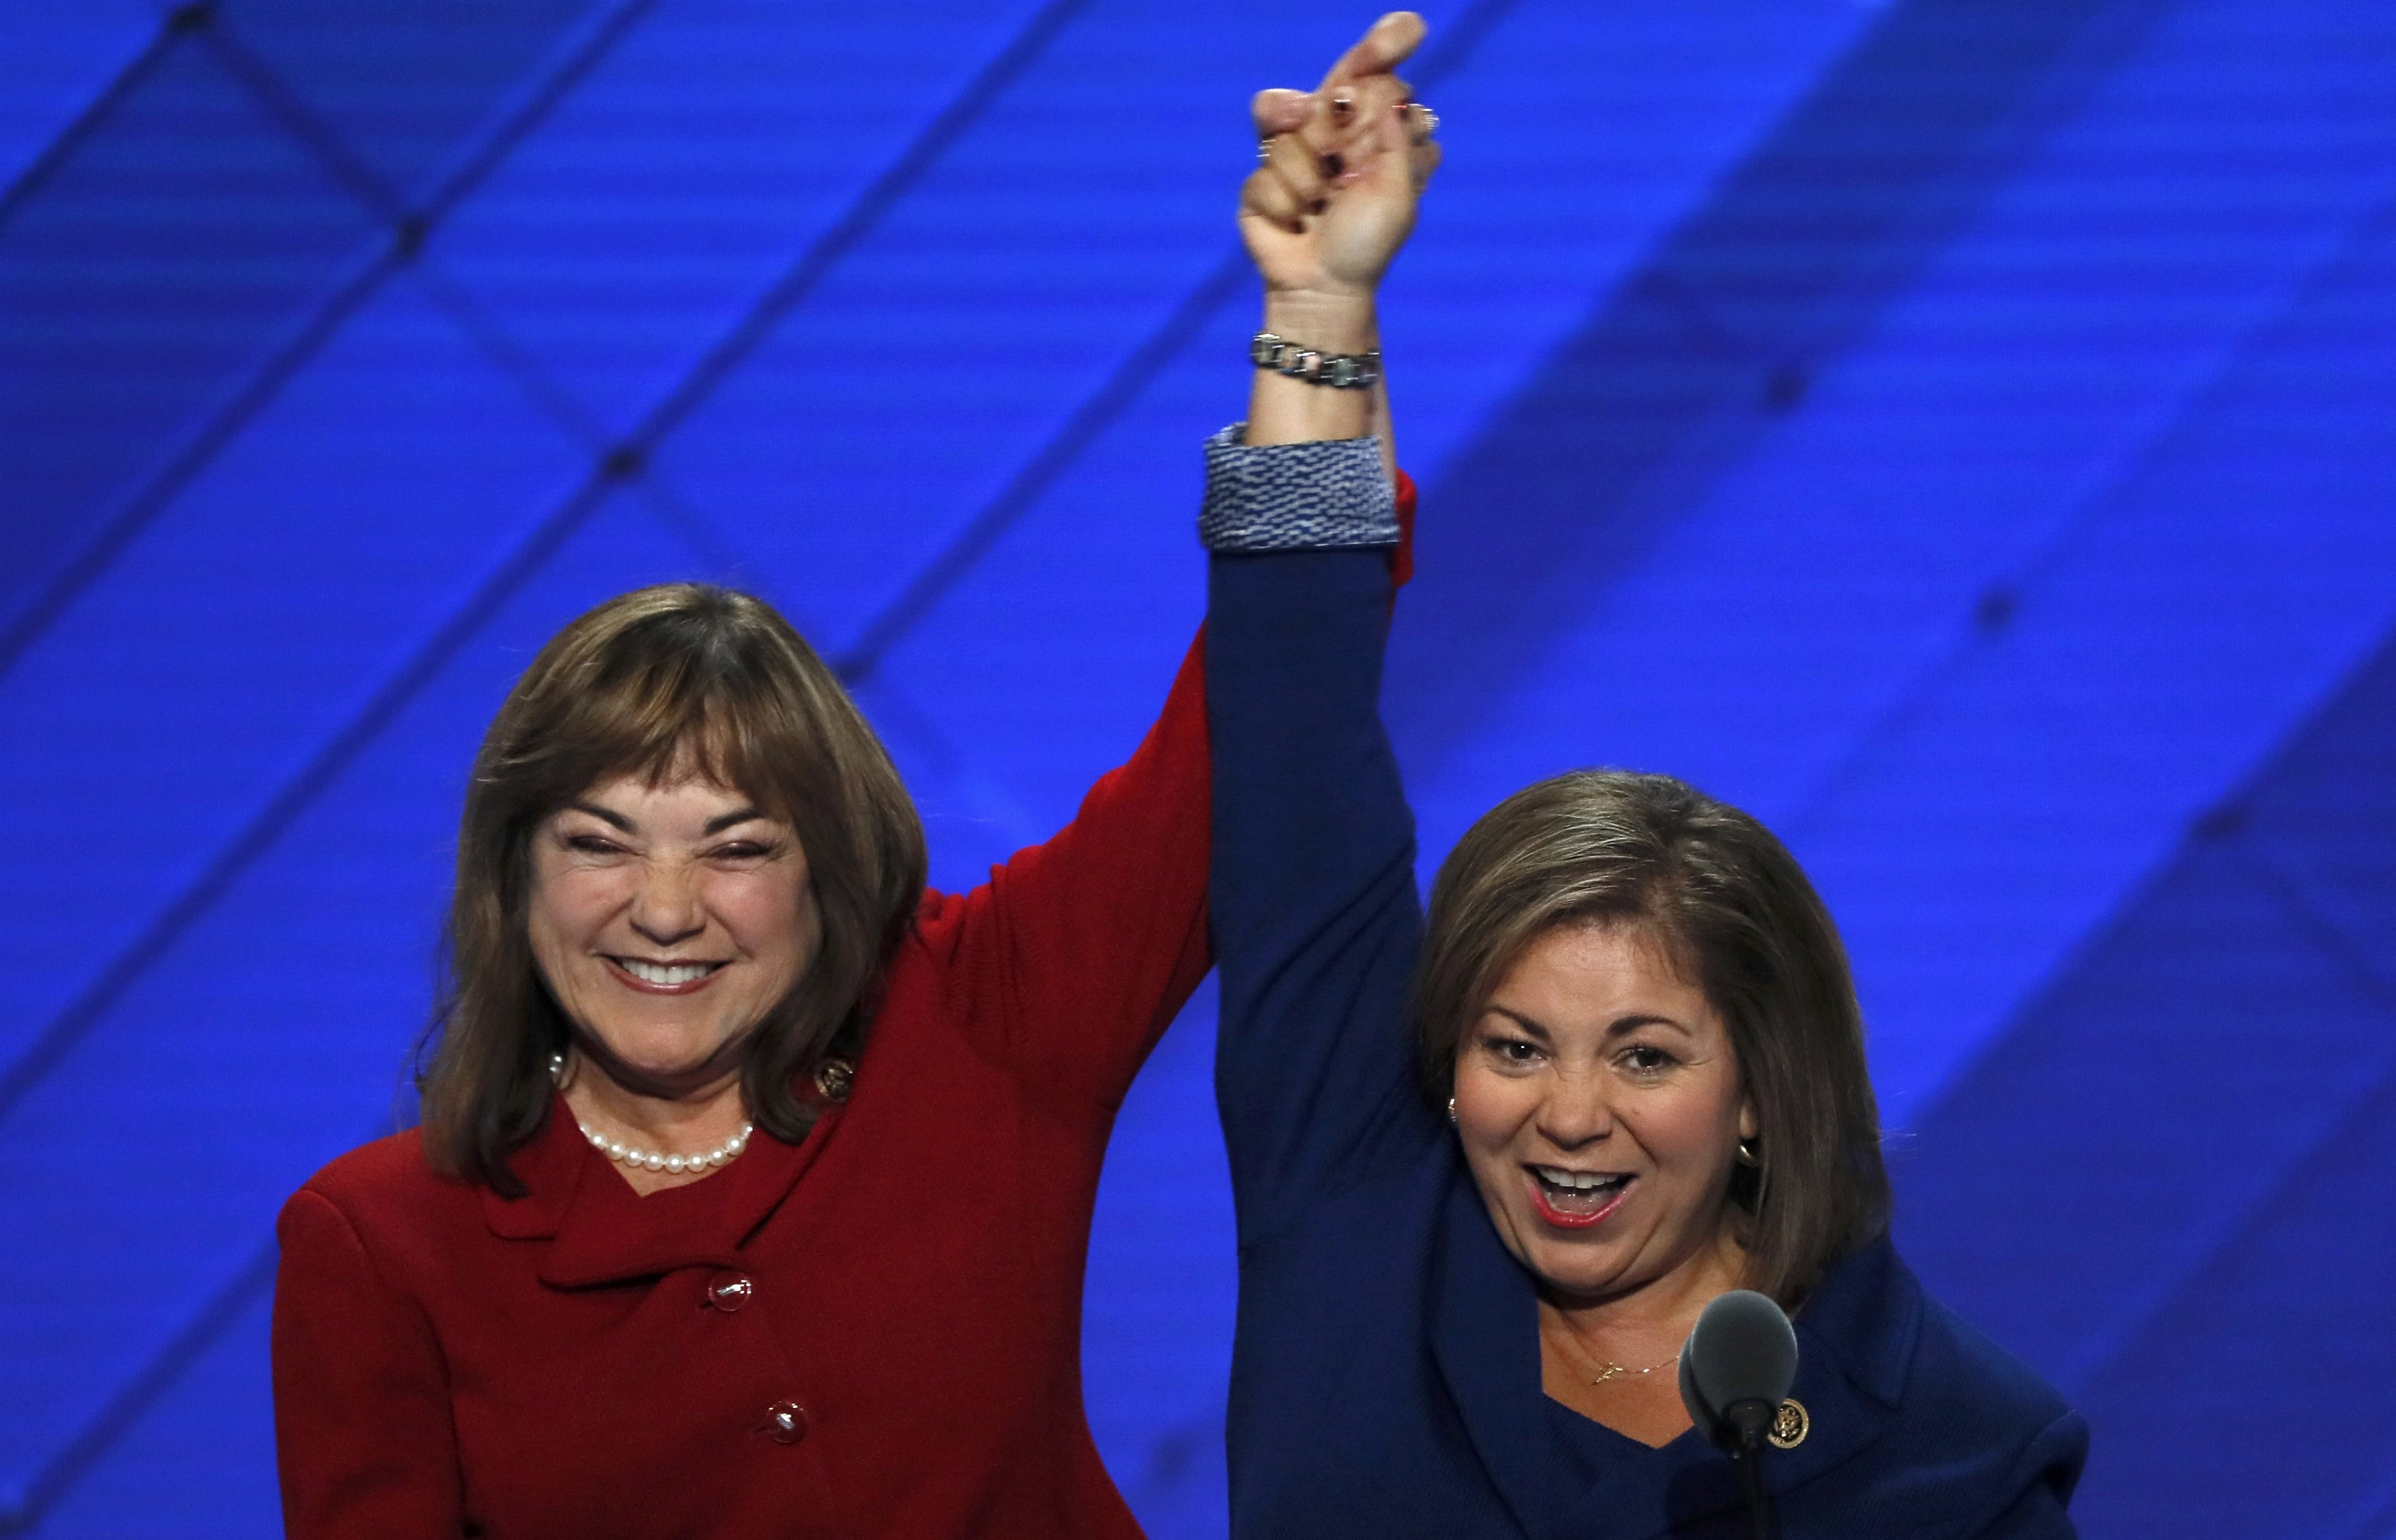 U.S. Rep. Linda Sanchez (D-CA) (R) and her sister and fellow Rep. Loretta join hands onstage at the Democratic National Convention in Philadelphia on July 25, 2016.